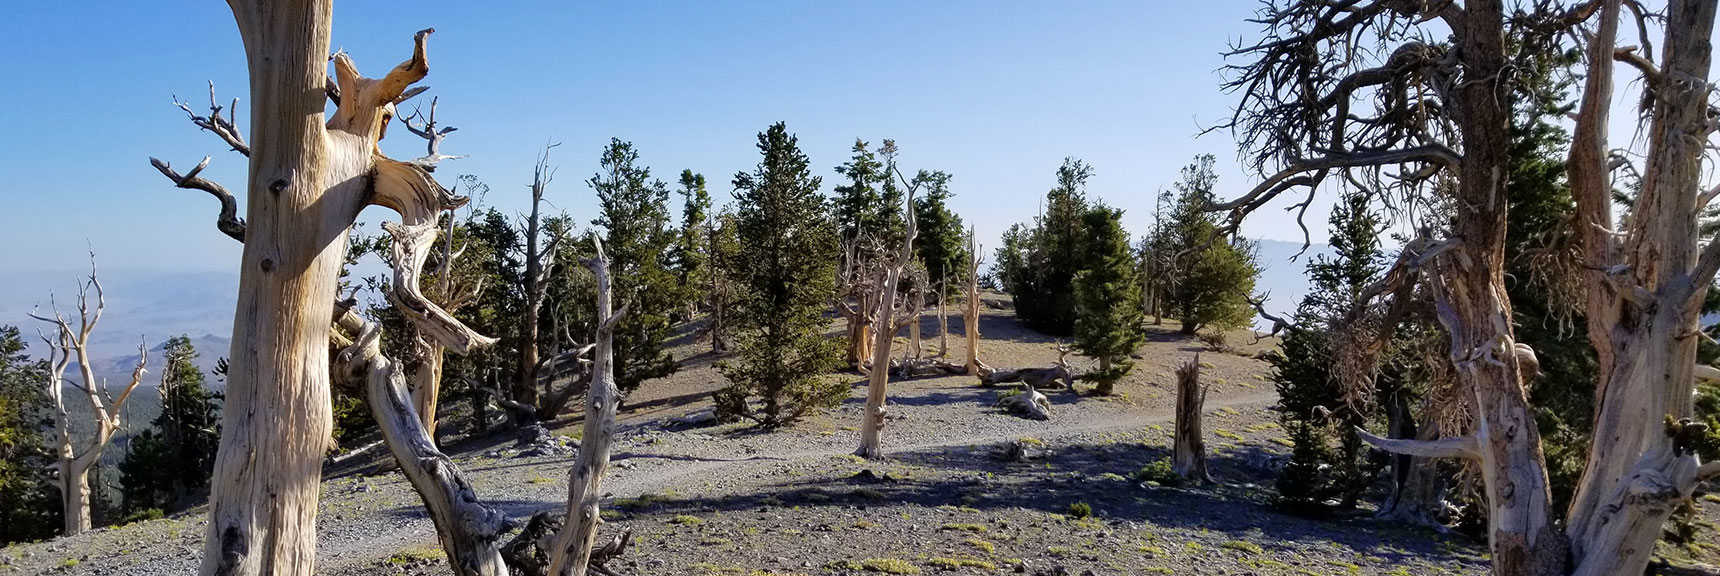 First Plateau on the North Loop Trail to Mummy Mountain in the Mt. Charleston Wilderness, Nevada